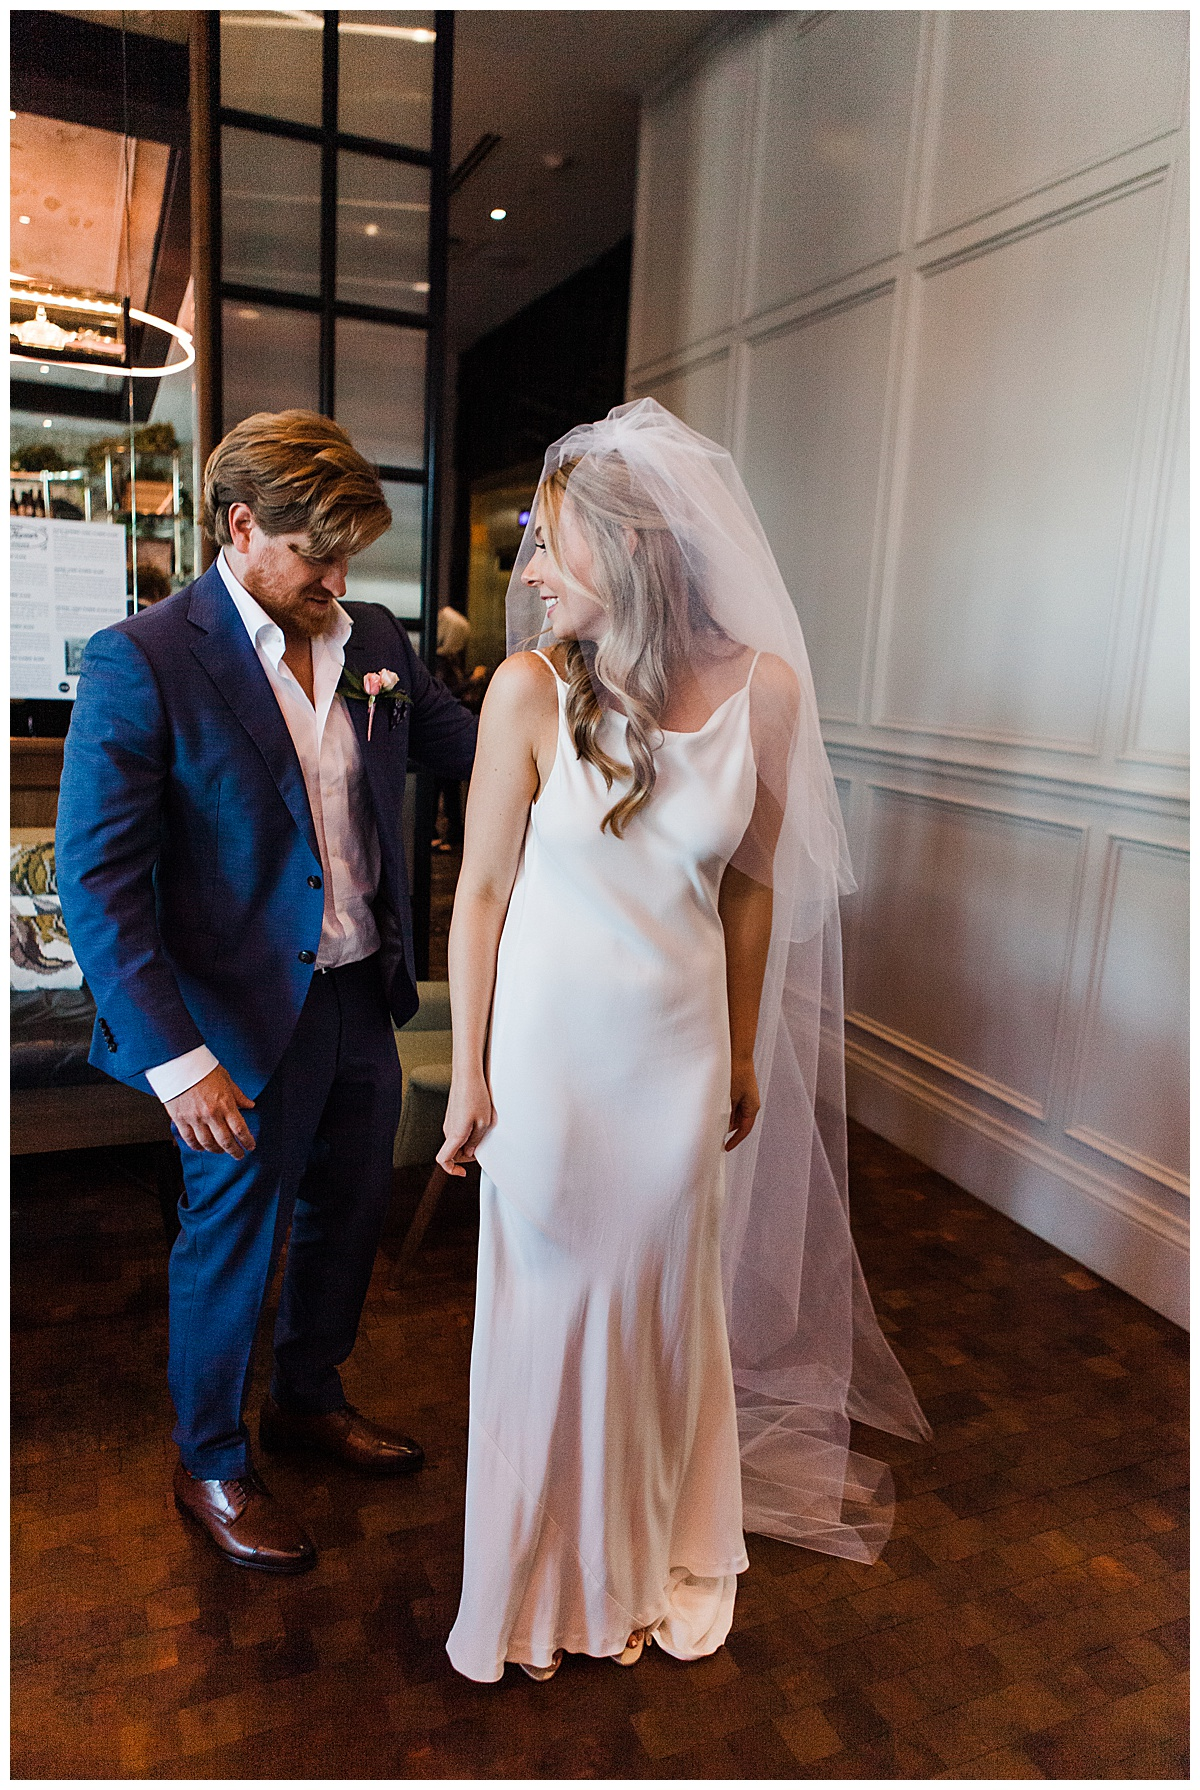 Groom looks at bride while she looks over shoulder | First look wedding